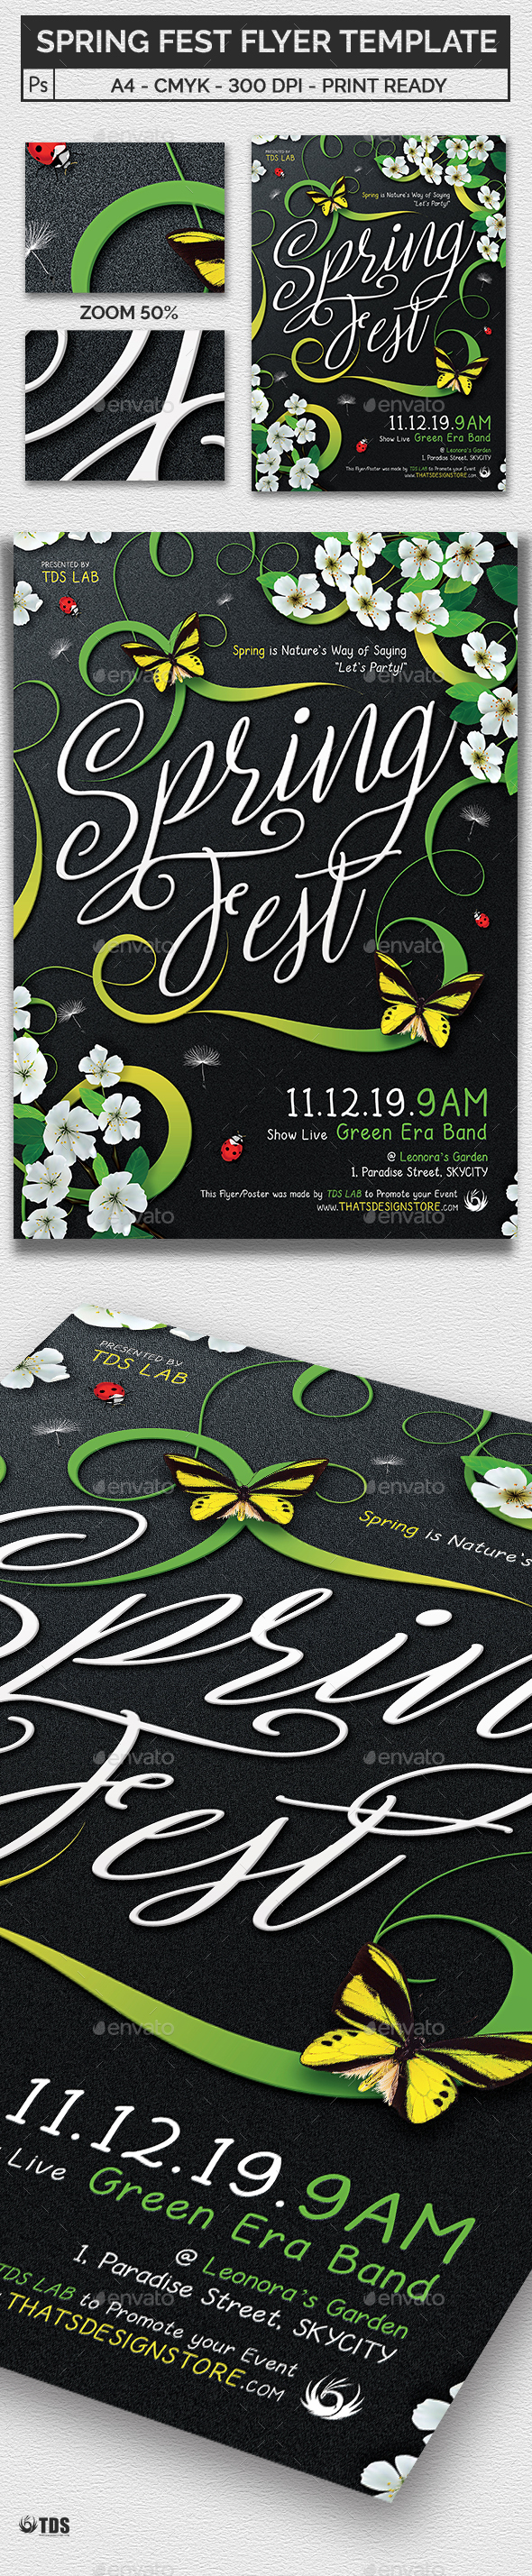 Spring Fest Flyer Template - Clubs & Parties Events